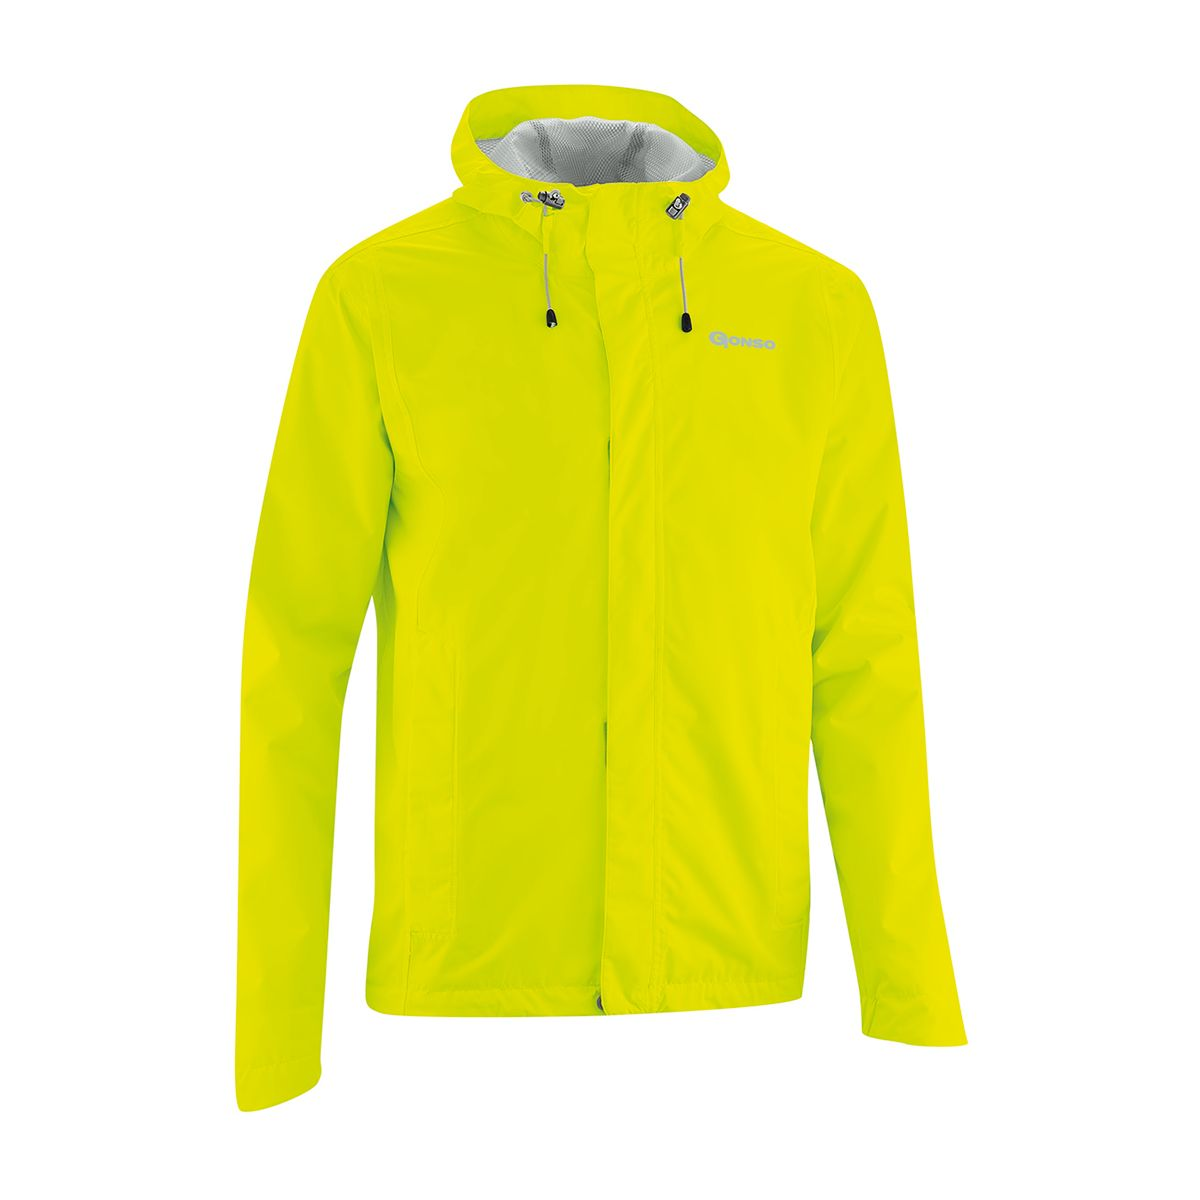 SAVE LIGHT waterproof jacket